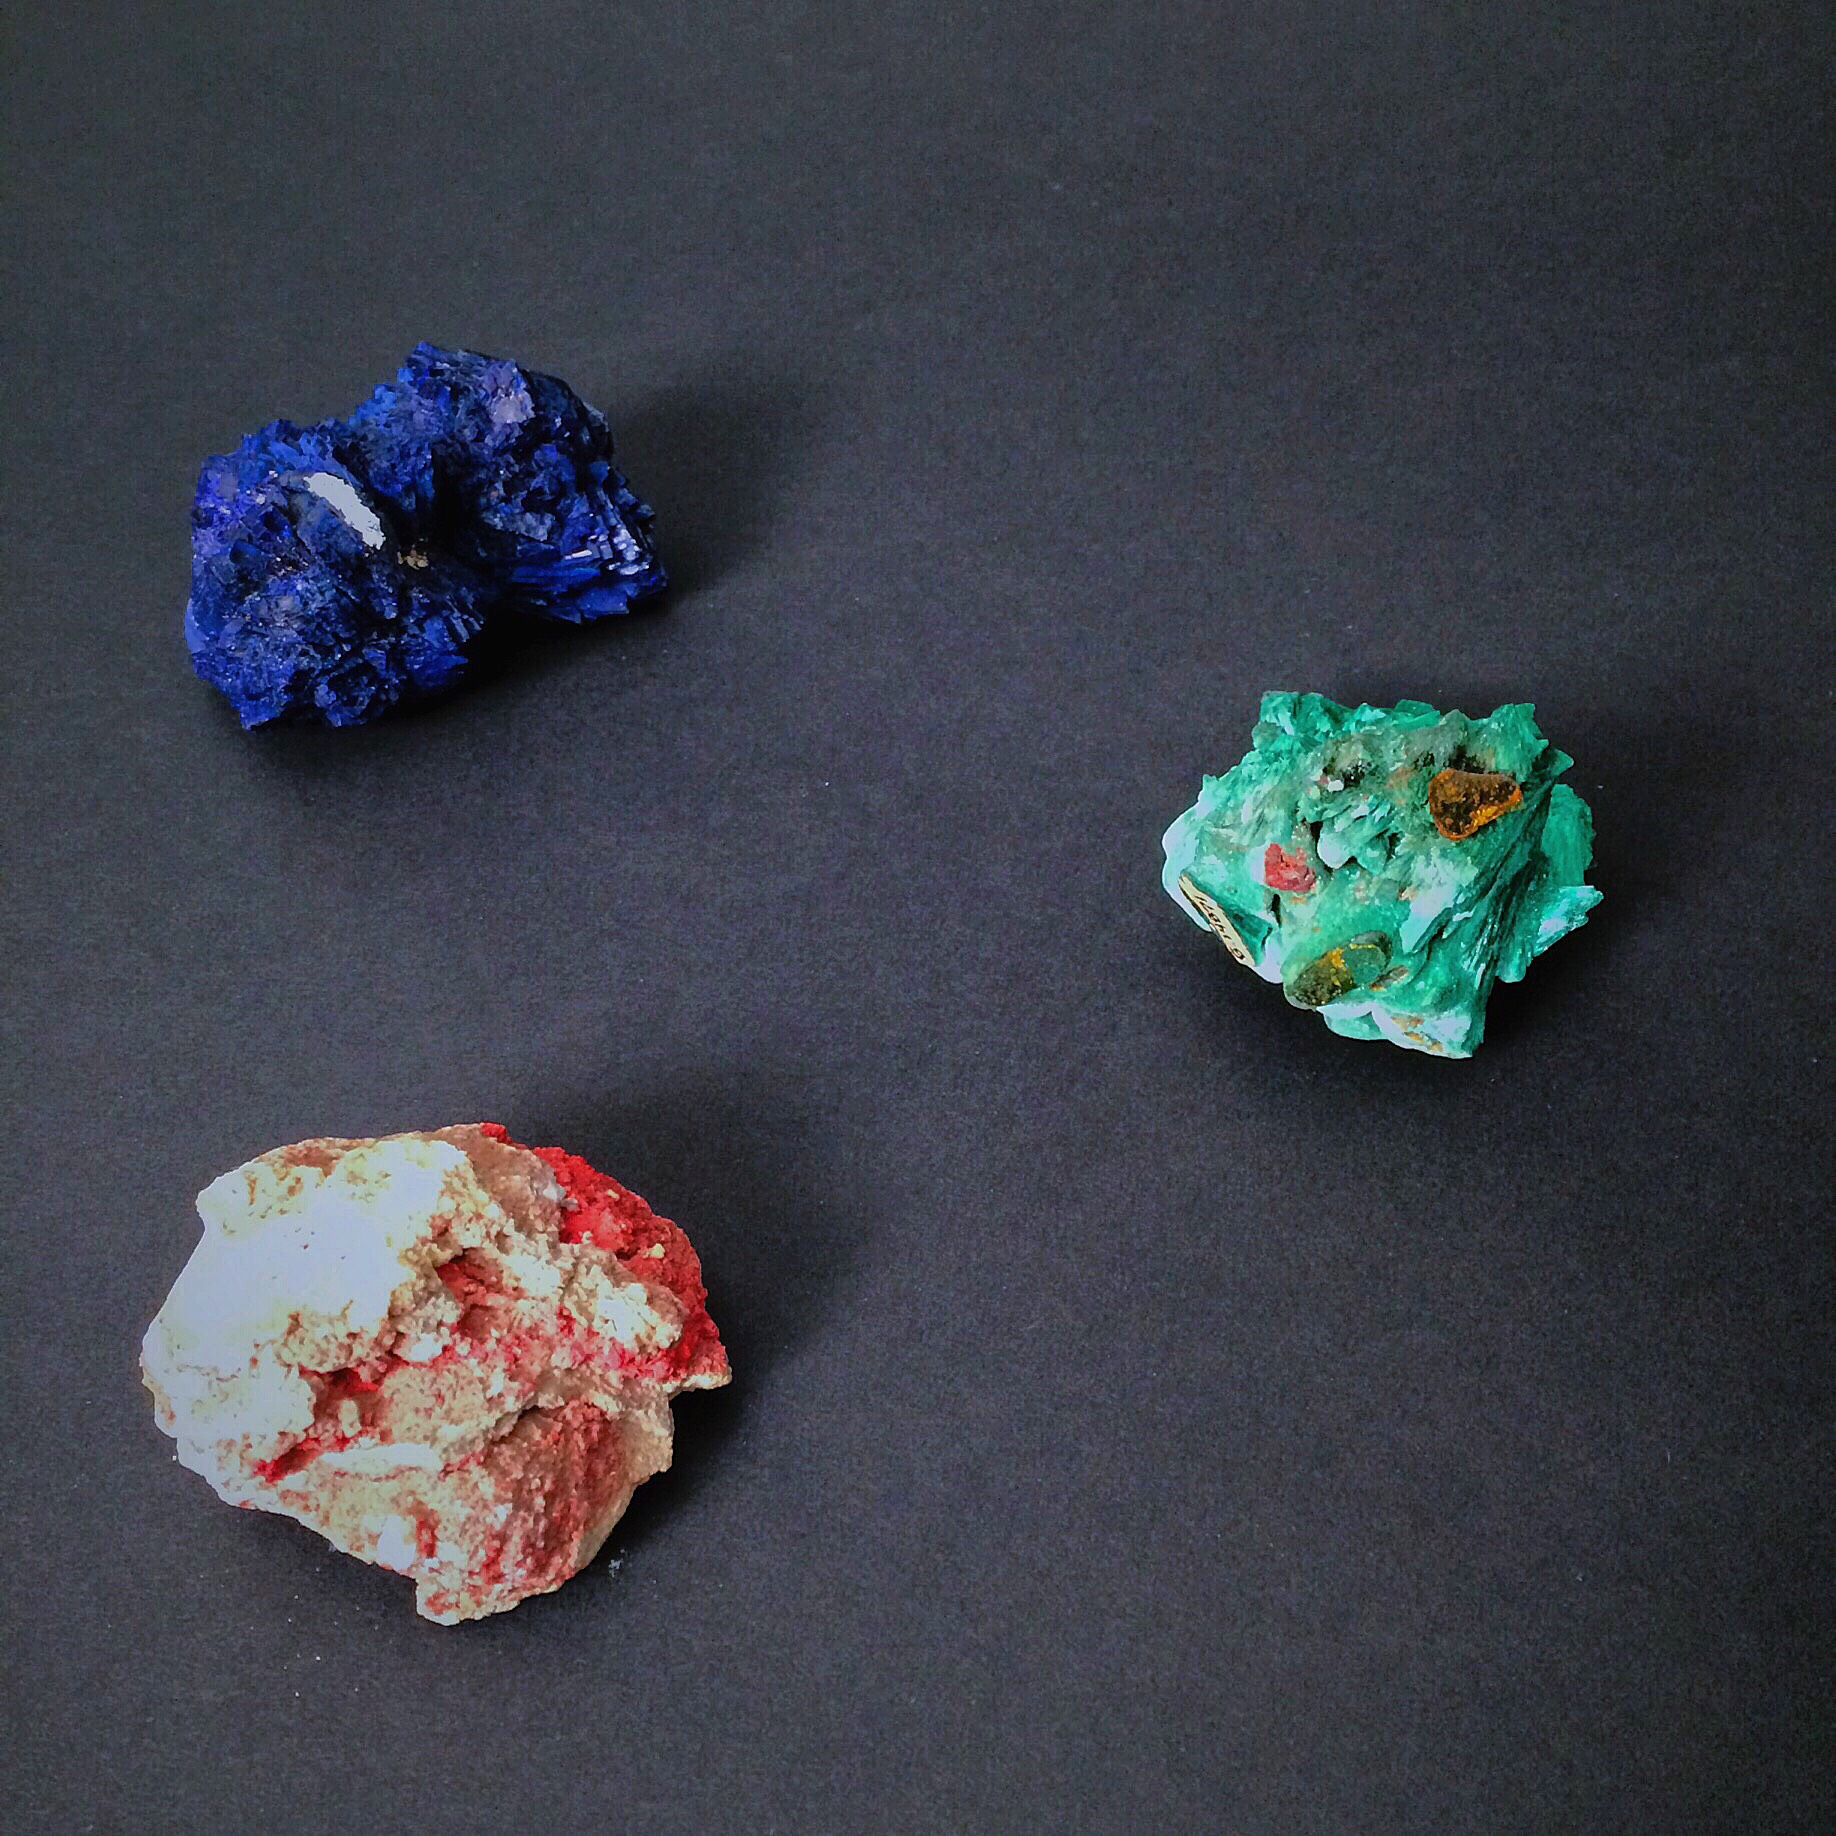 These minerals are idiochromatic. Their color is constant and predictable. Moving clockwise from the top left: azurite, malachite, and cinnabar. Minerals are from the Bruce Museum's collection. Photo by  Haley Royer.